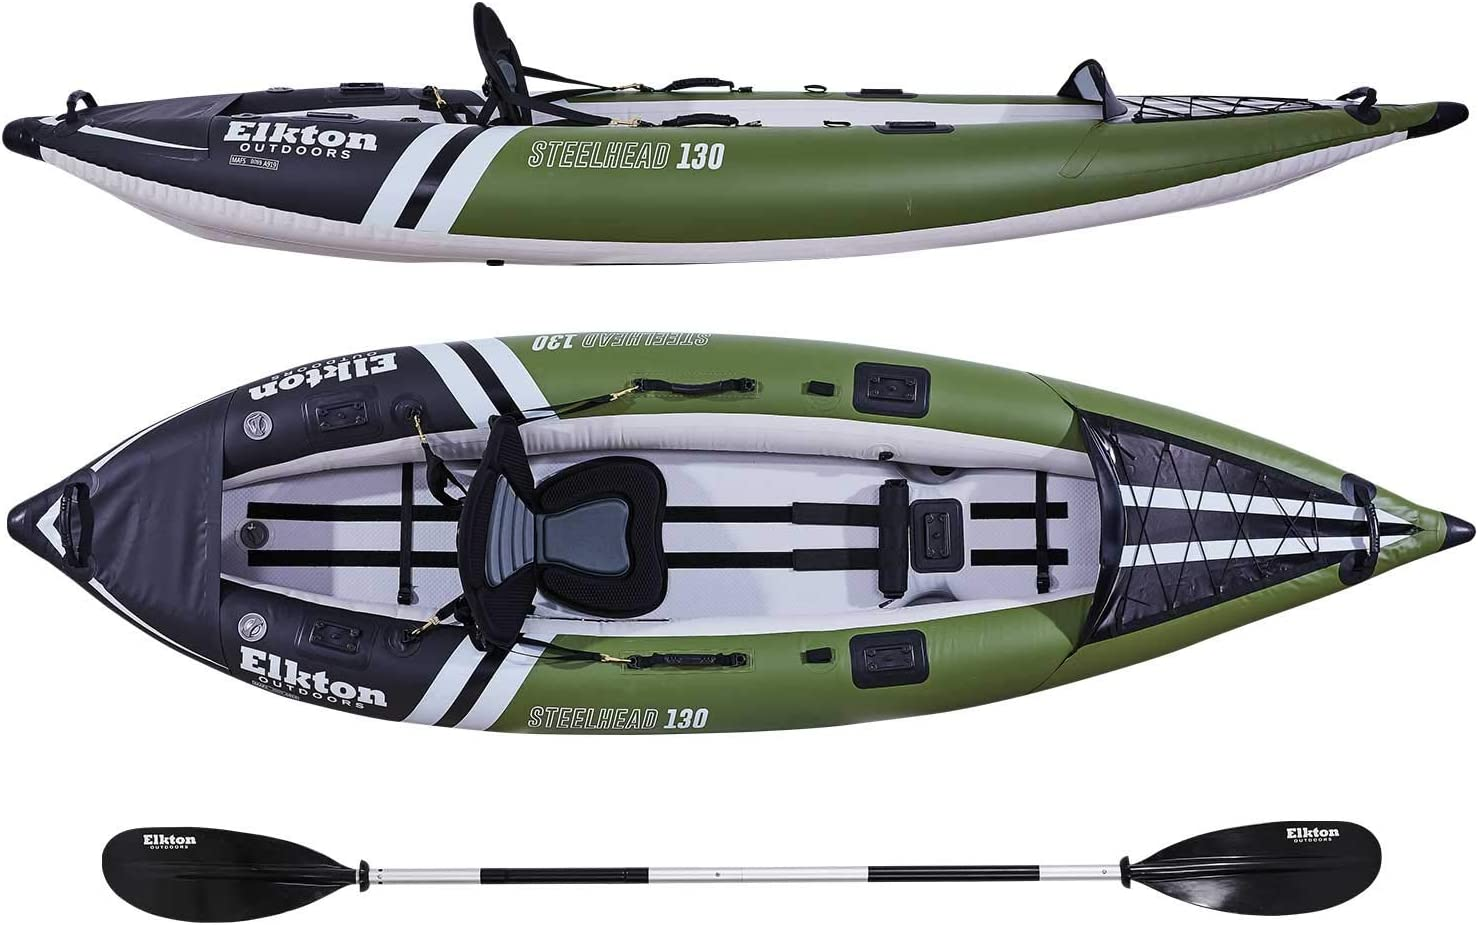 Amazon.com: Elkton Outdoors - Kayak de pesca con cabeza de ...